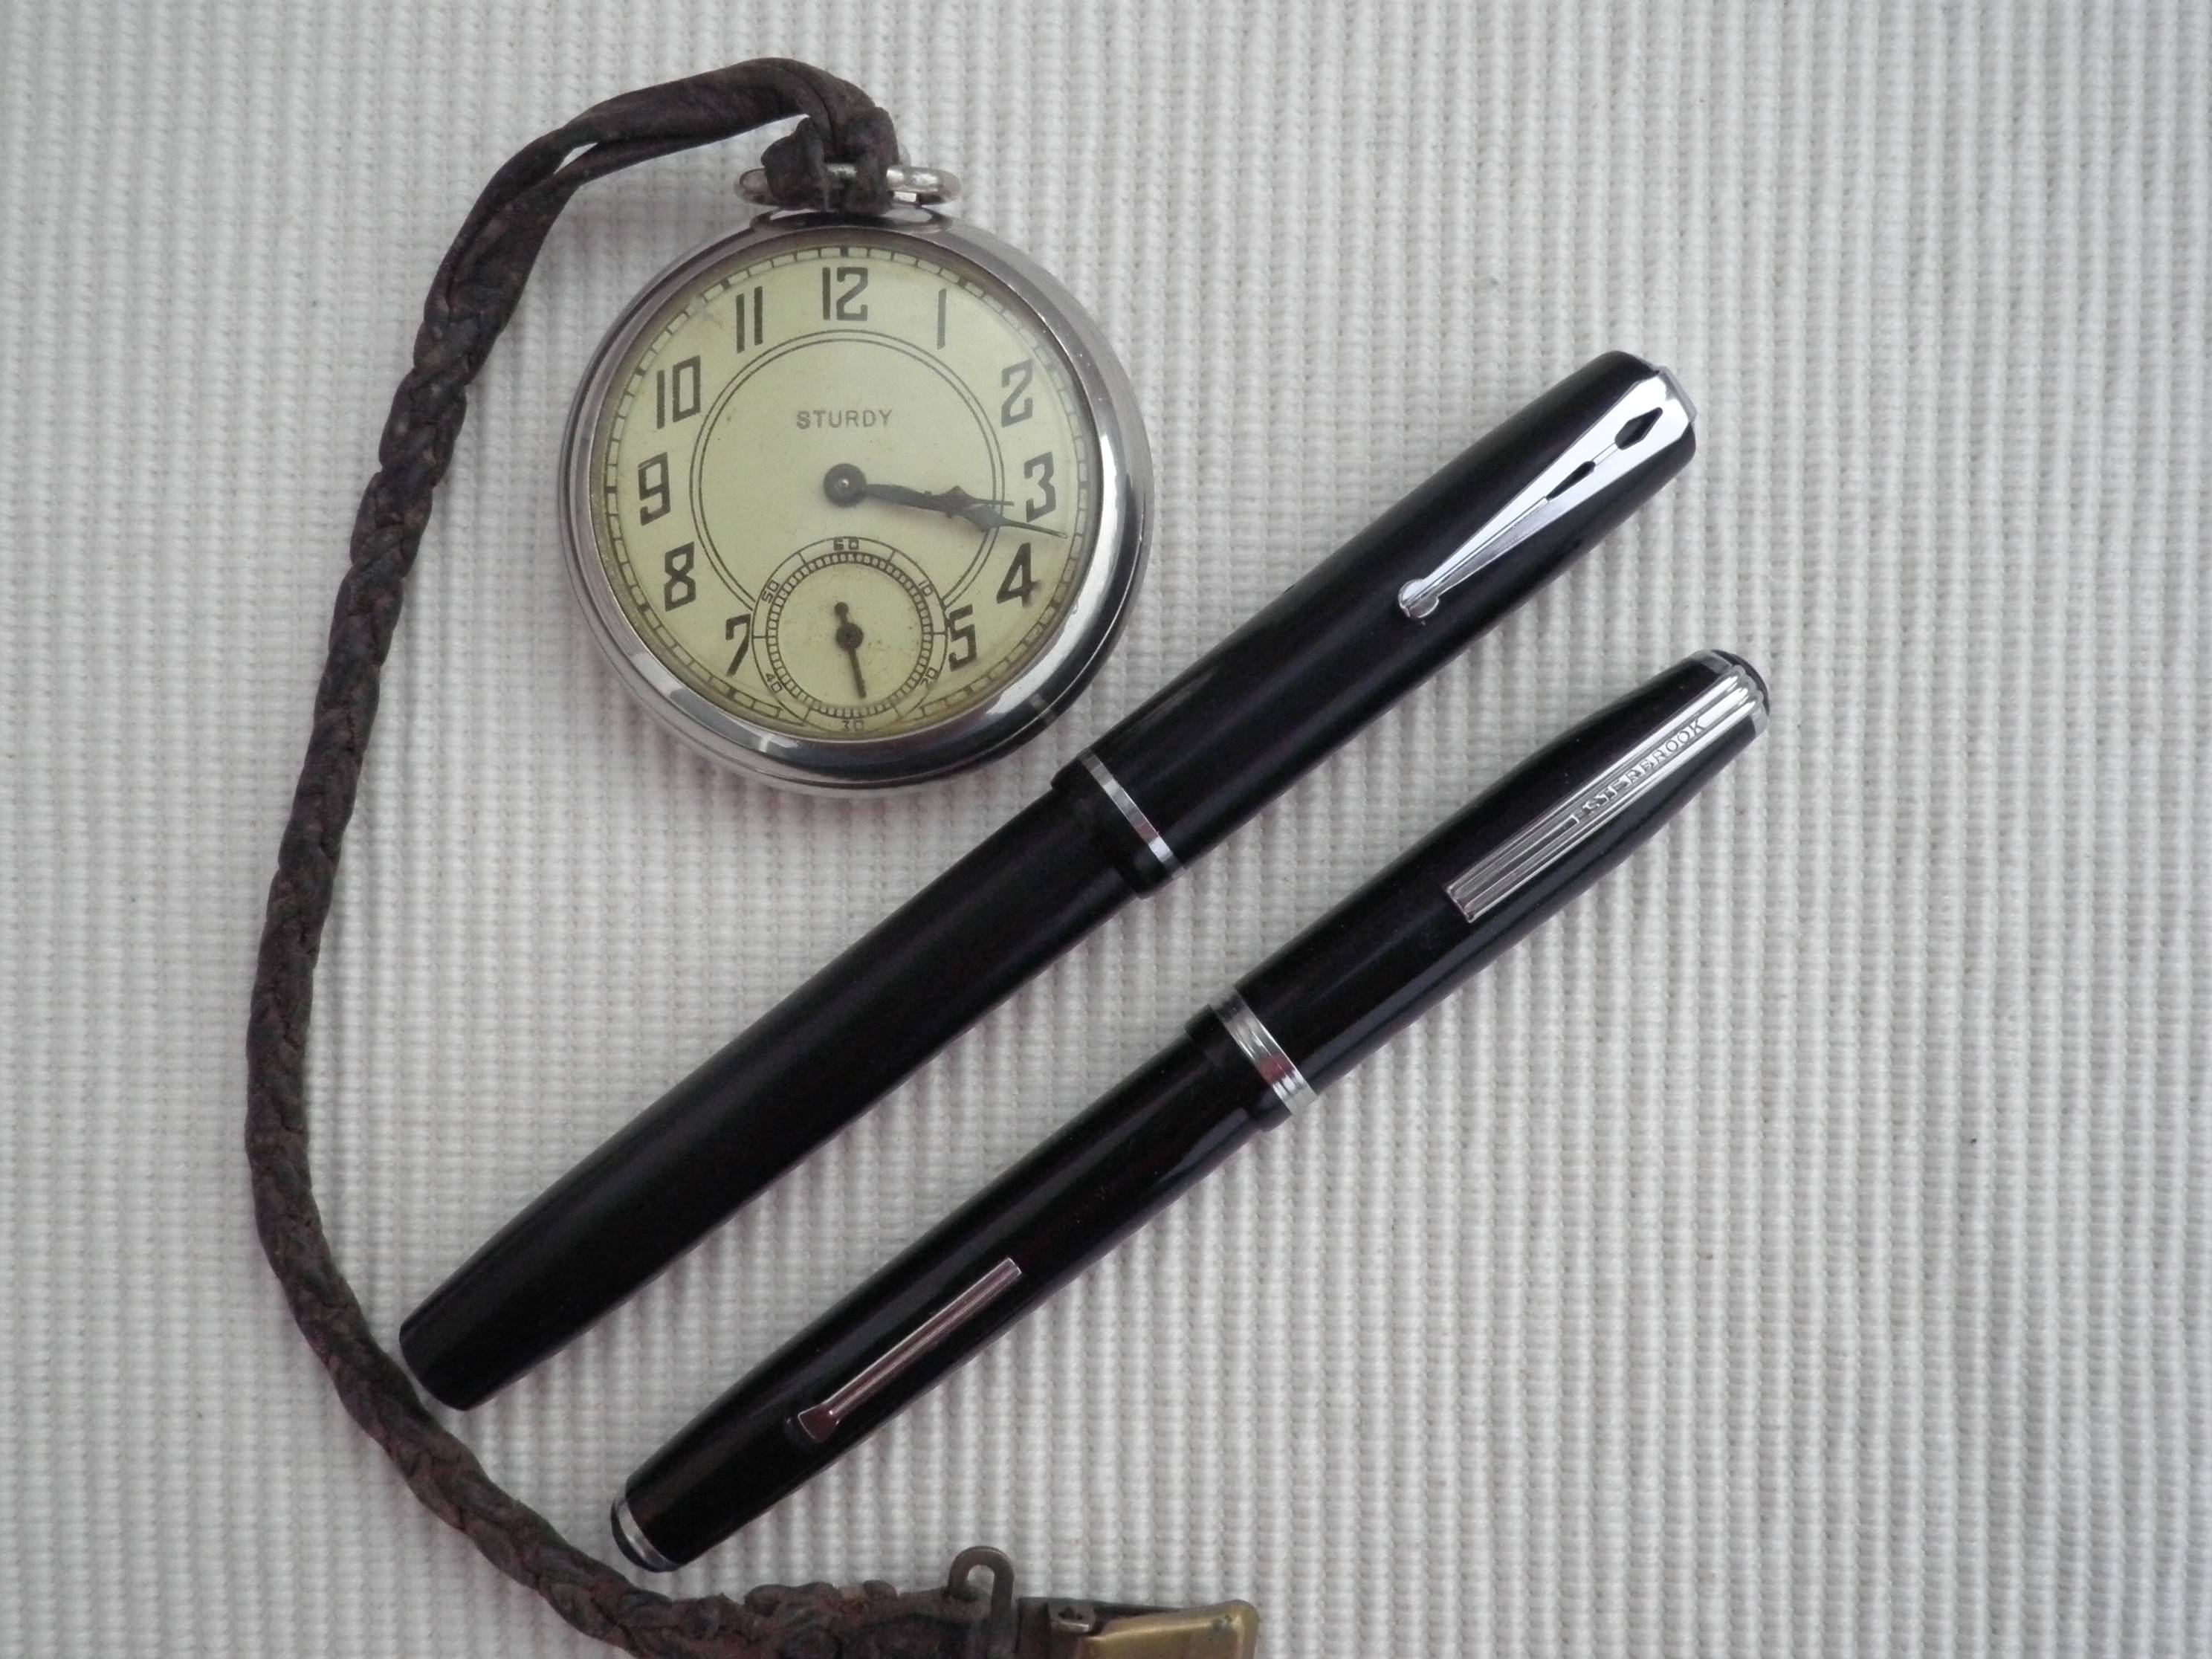 fpn_1486848113__pens_watches_2.jpg